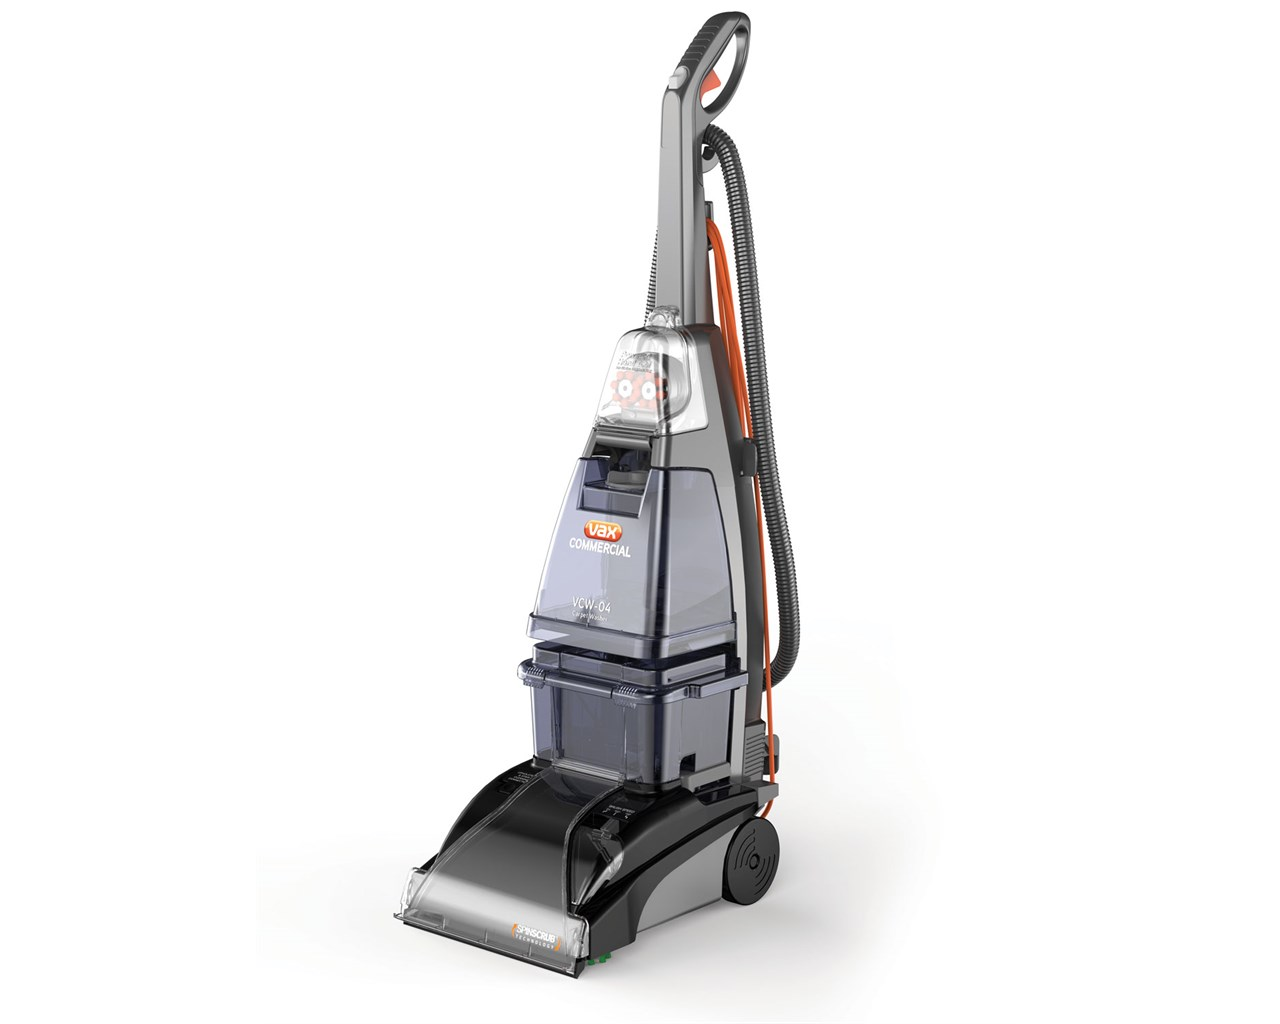 Vax Vcw 04 Upright Carpet Cleaner